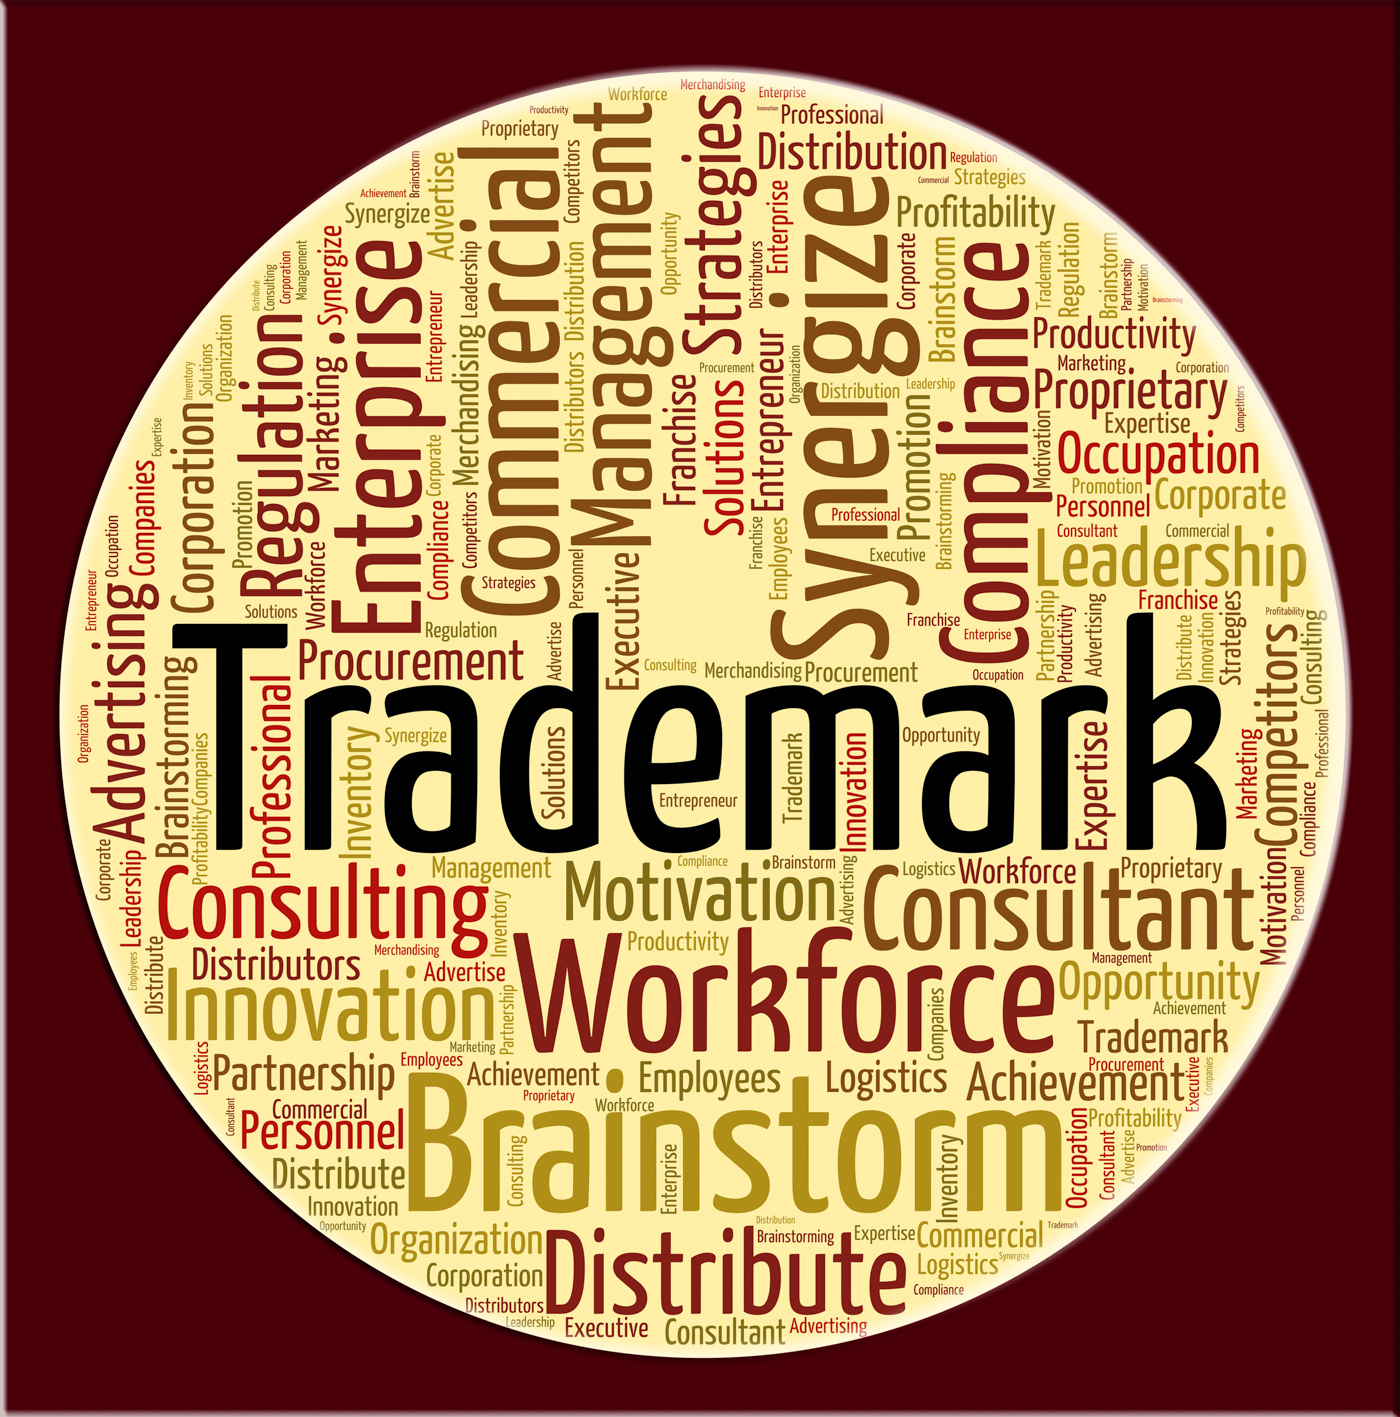 Trademark word means proprietary name and emblem photo